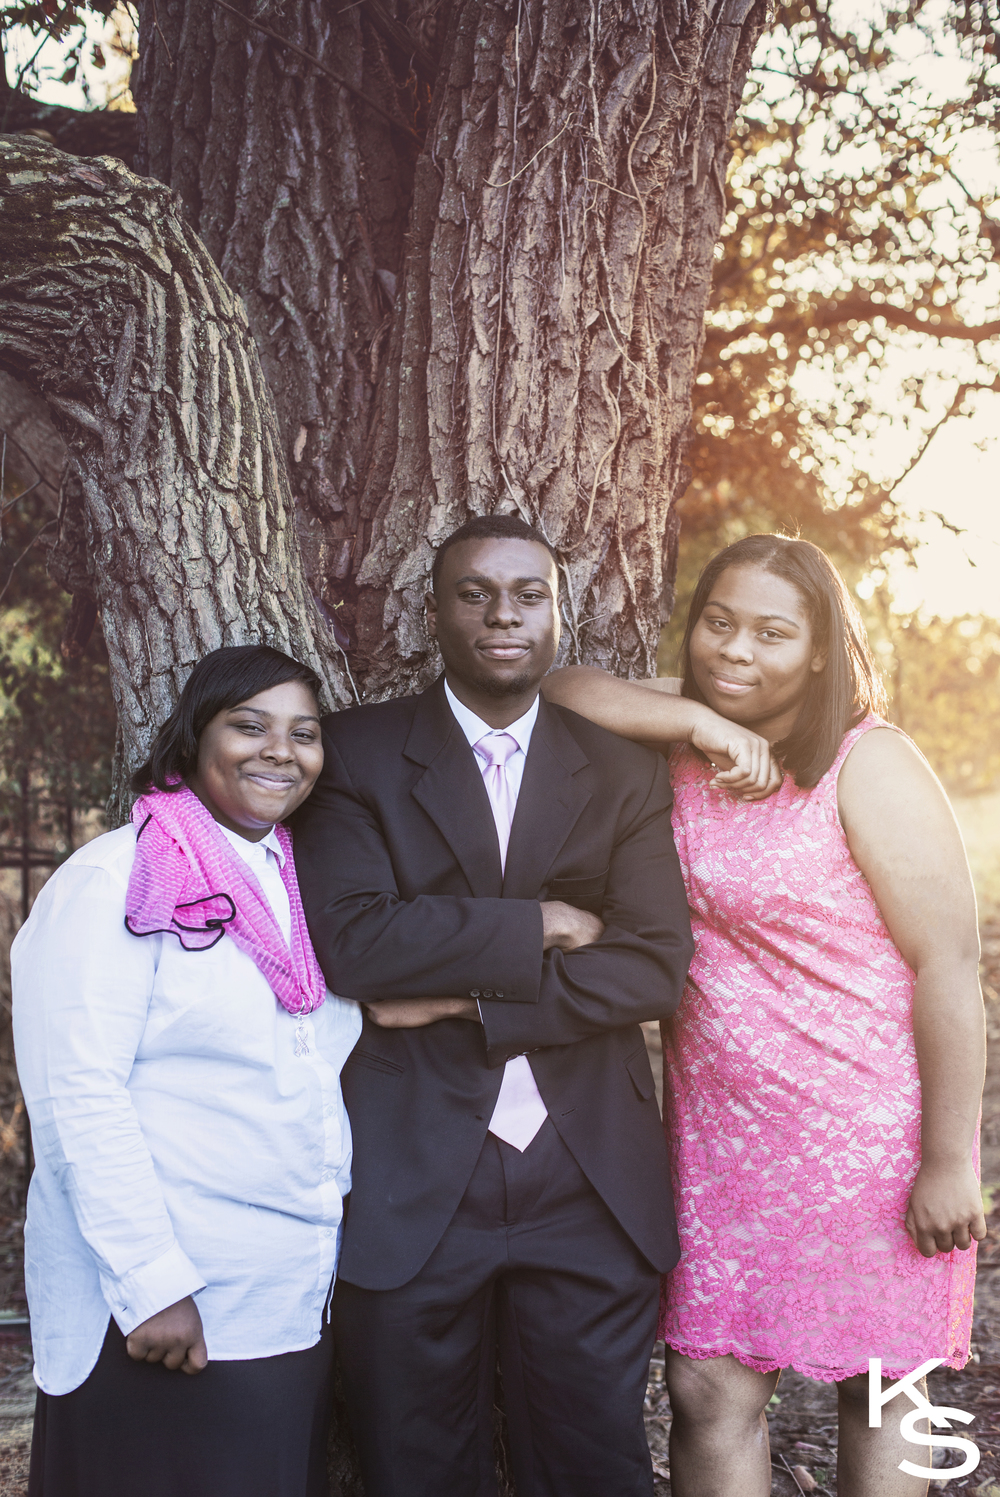 Fields Family - Portraits - K. Stoddard Photography 012.jpg